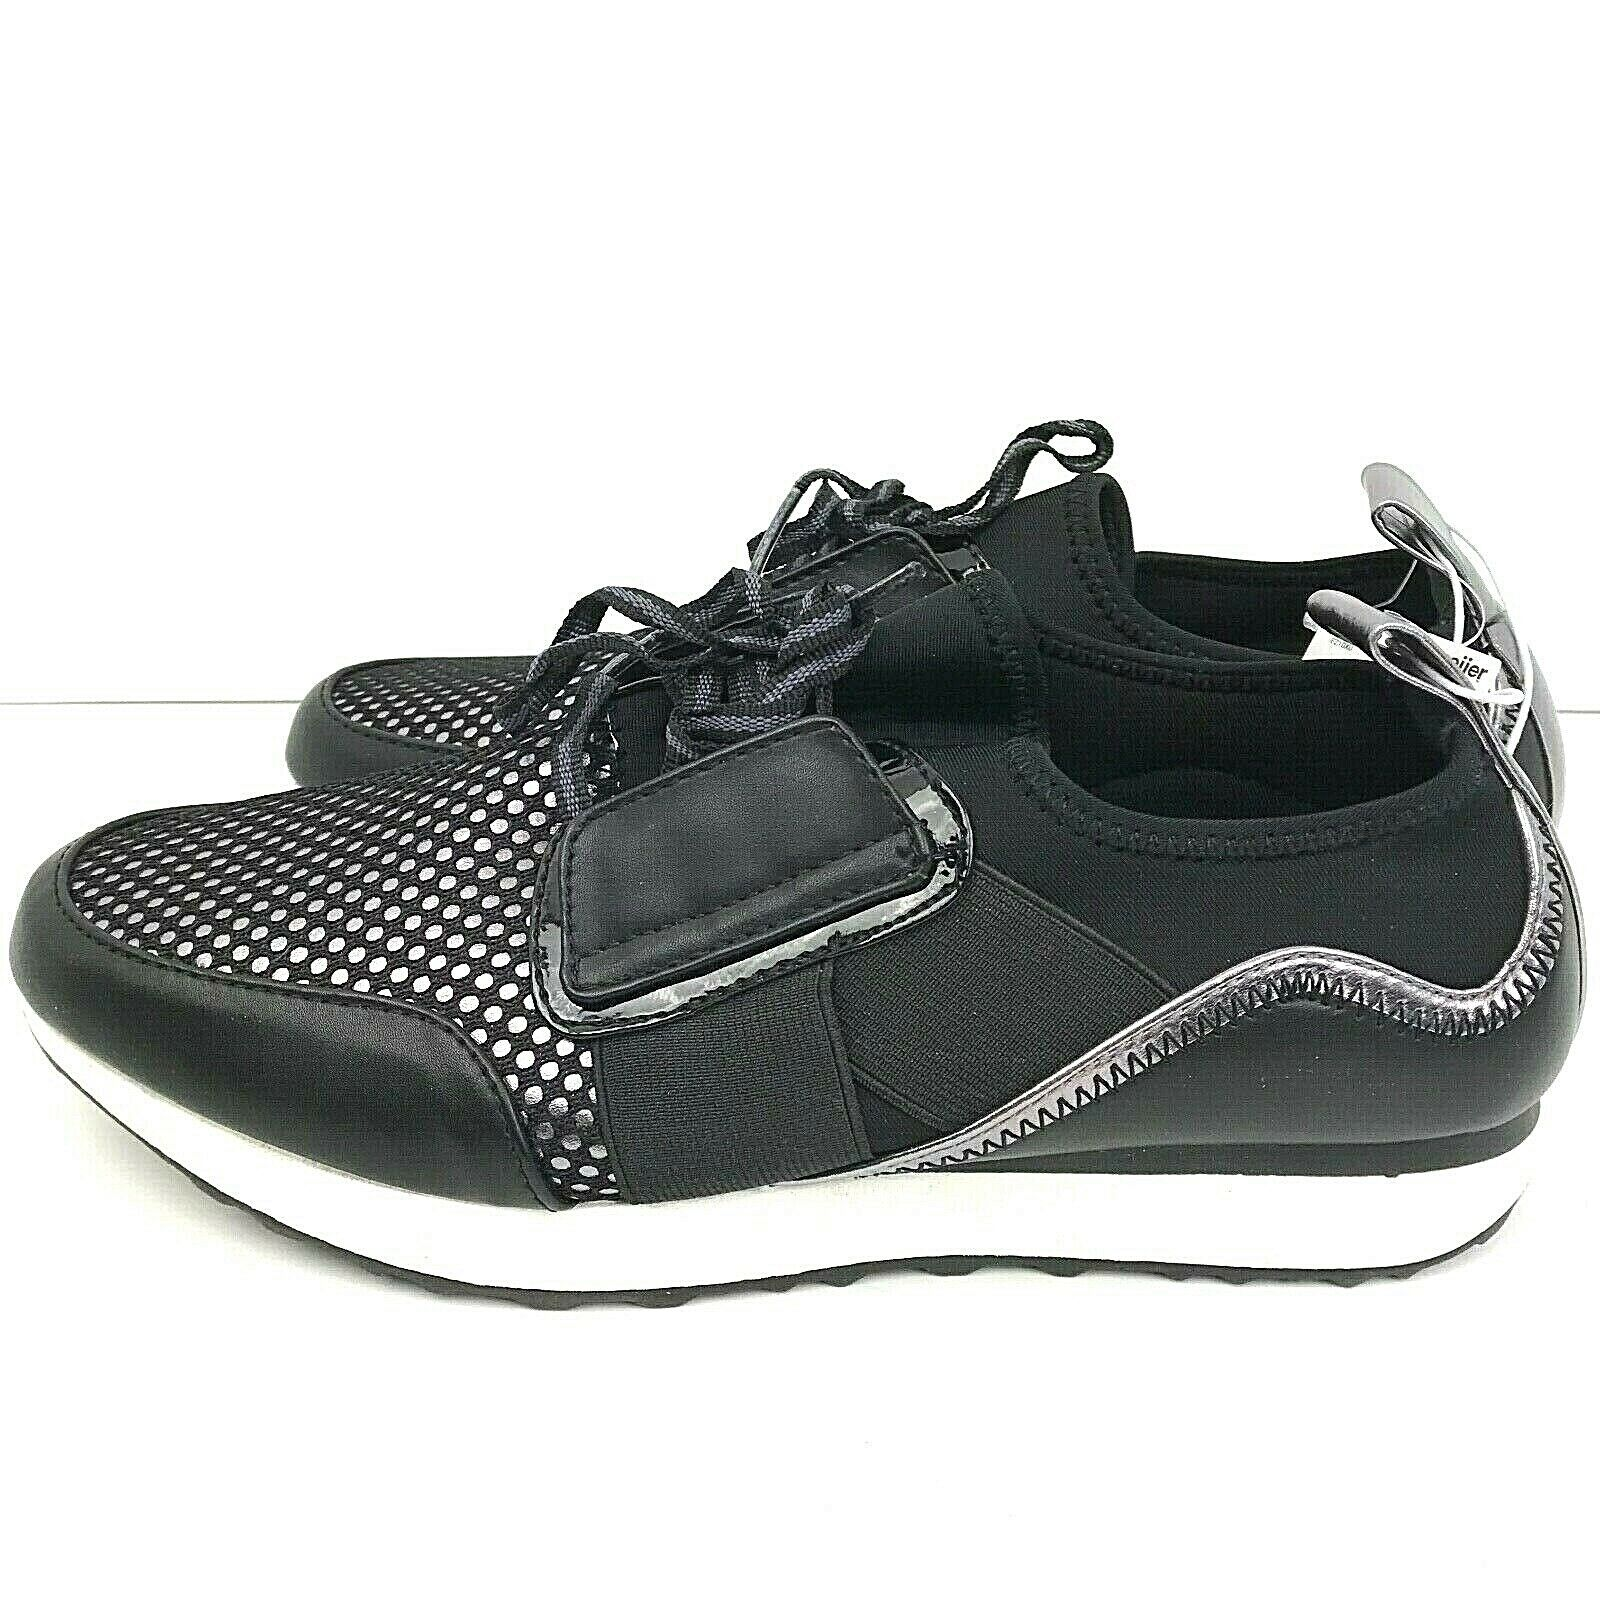 Massini Size 9 Womans Dressy Tennis shoes Black And Silver color Is Amy Black